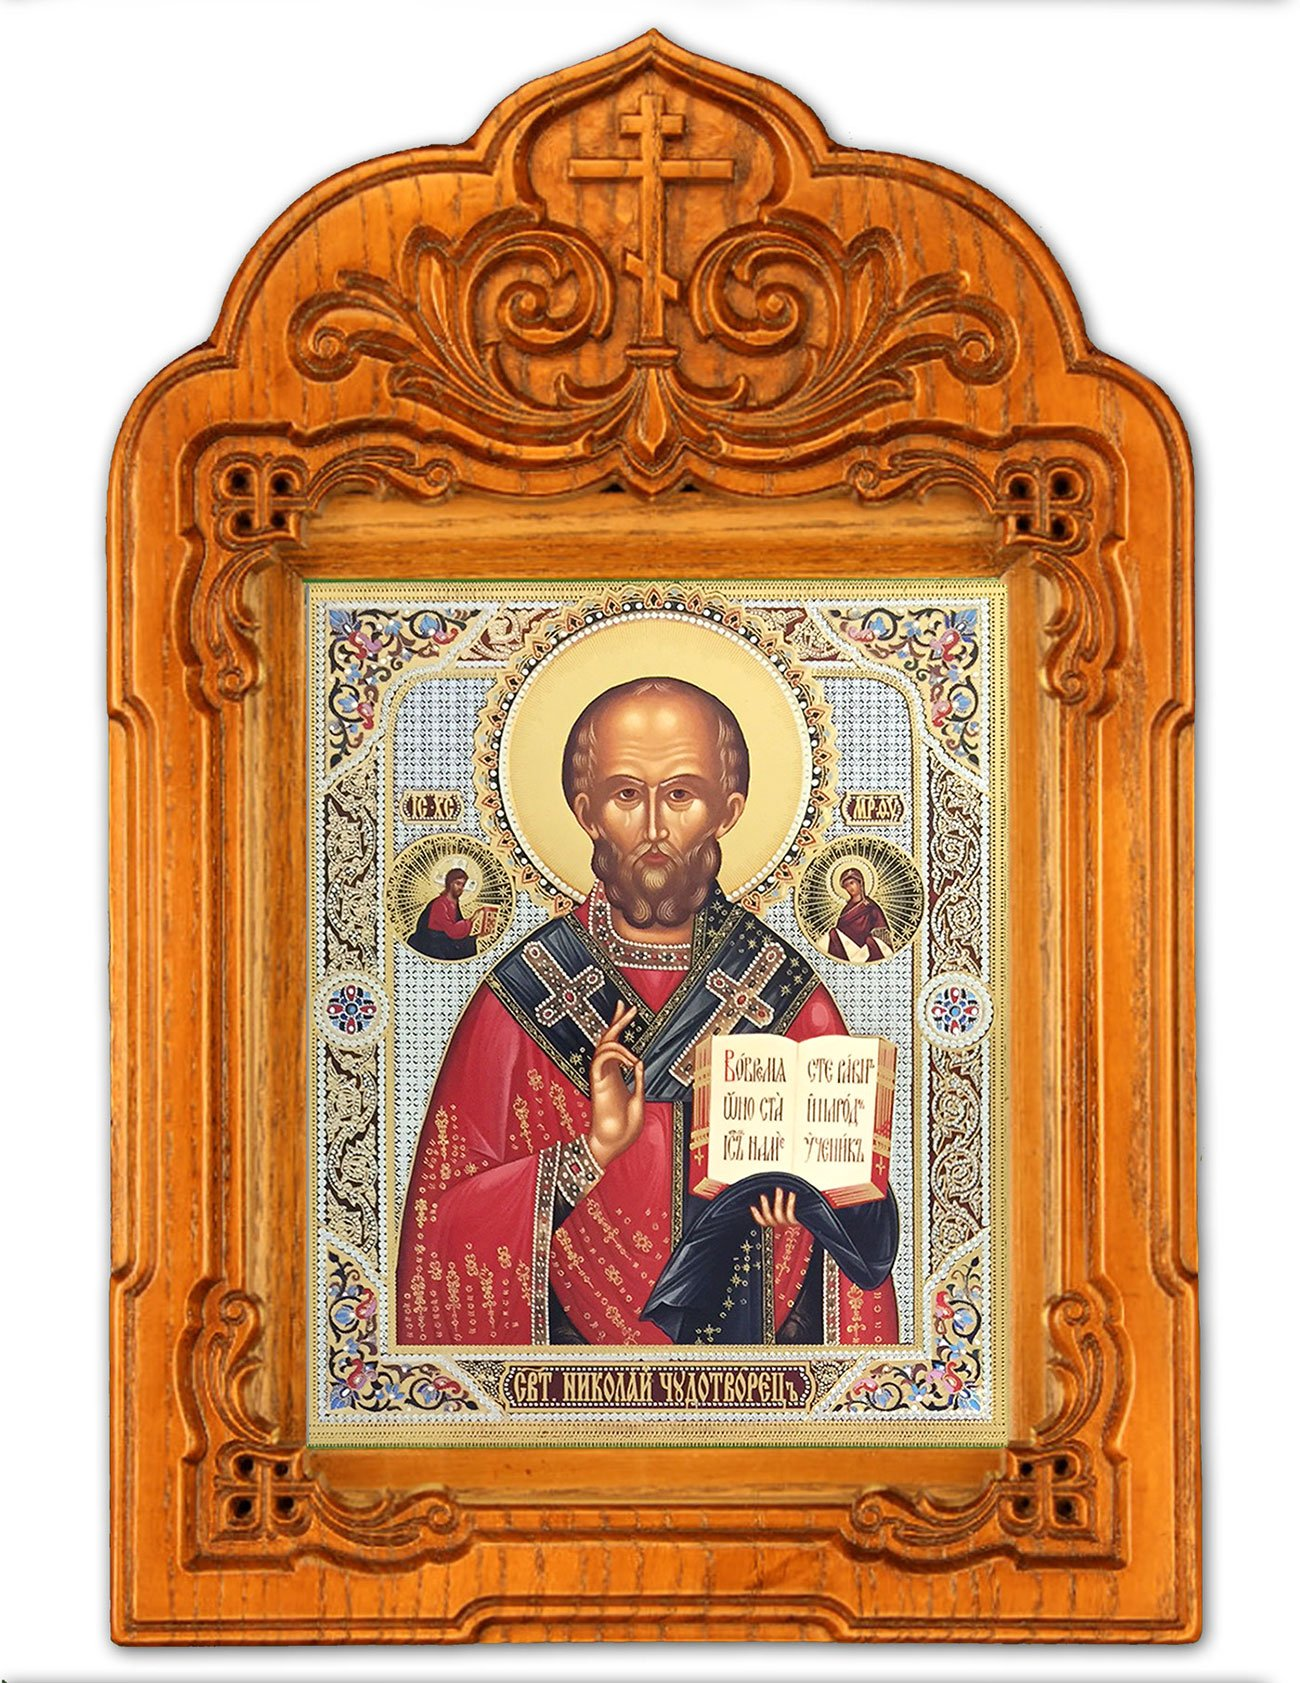 St Saint Nicholas Russian Orthodox Icon in Wooden Shrine Three Bar Cross Glass 11 Inch by Religious Gifts